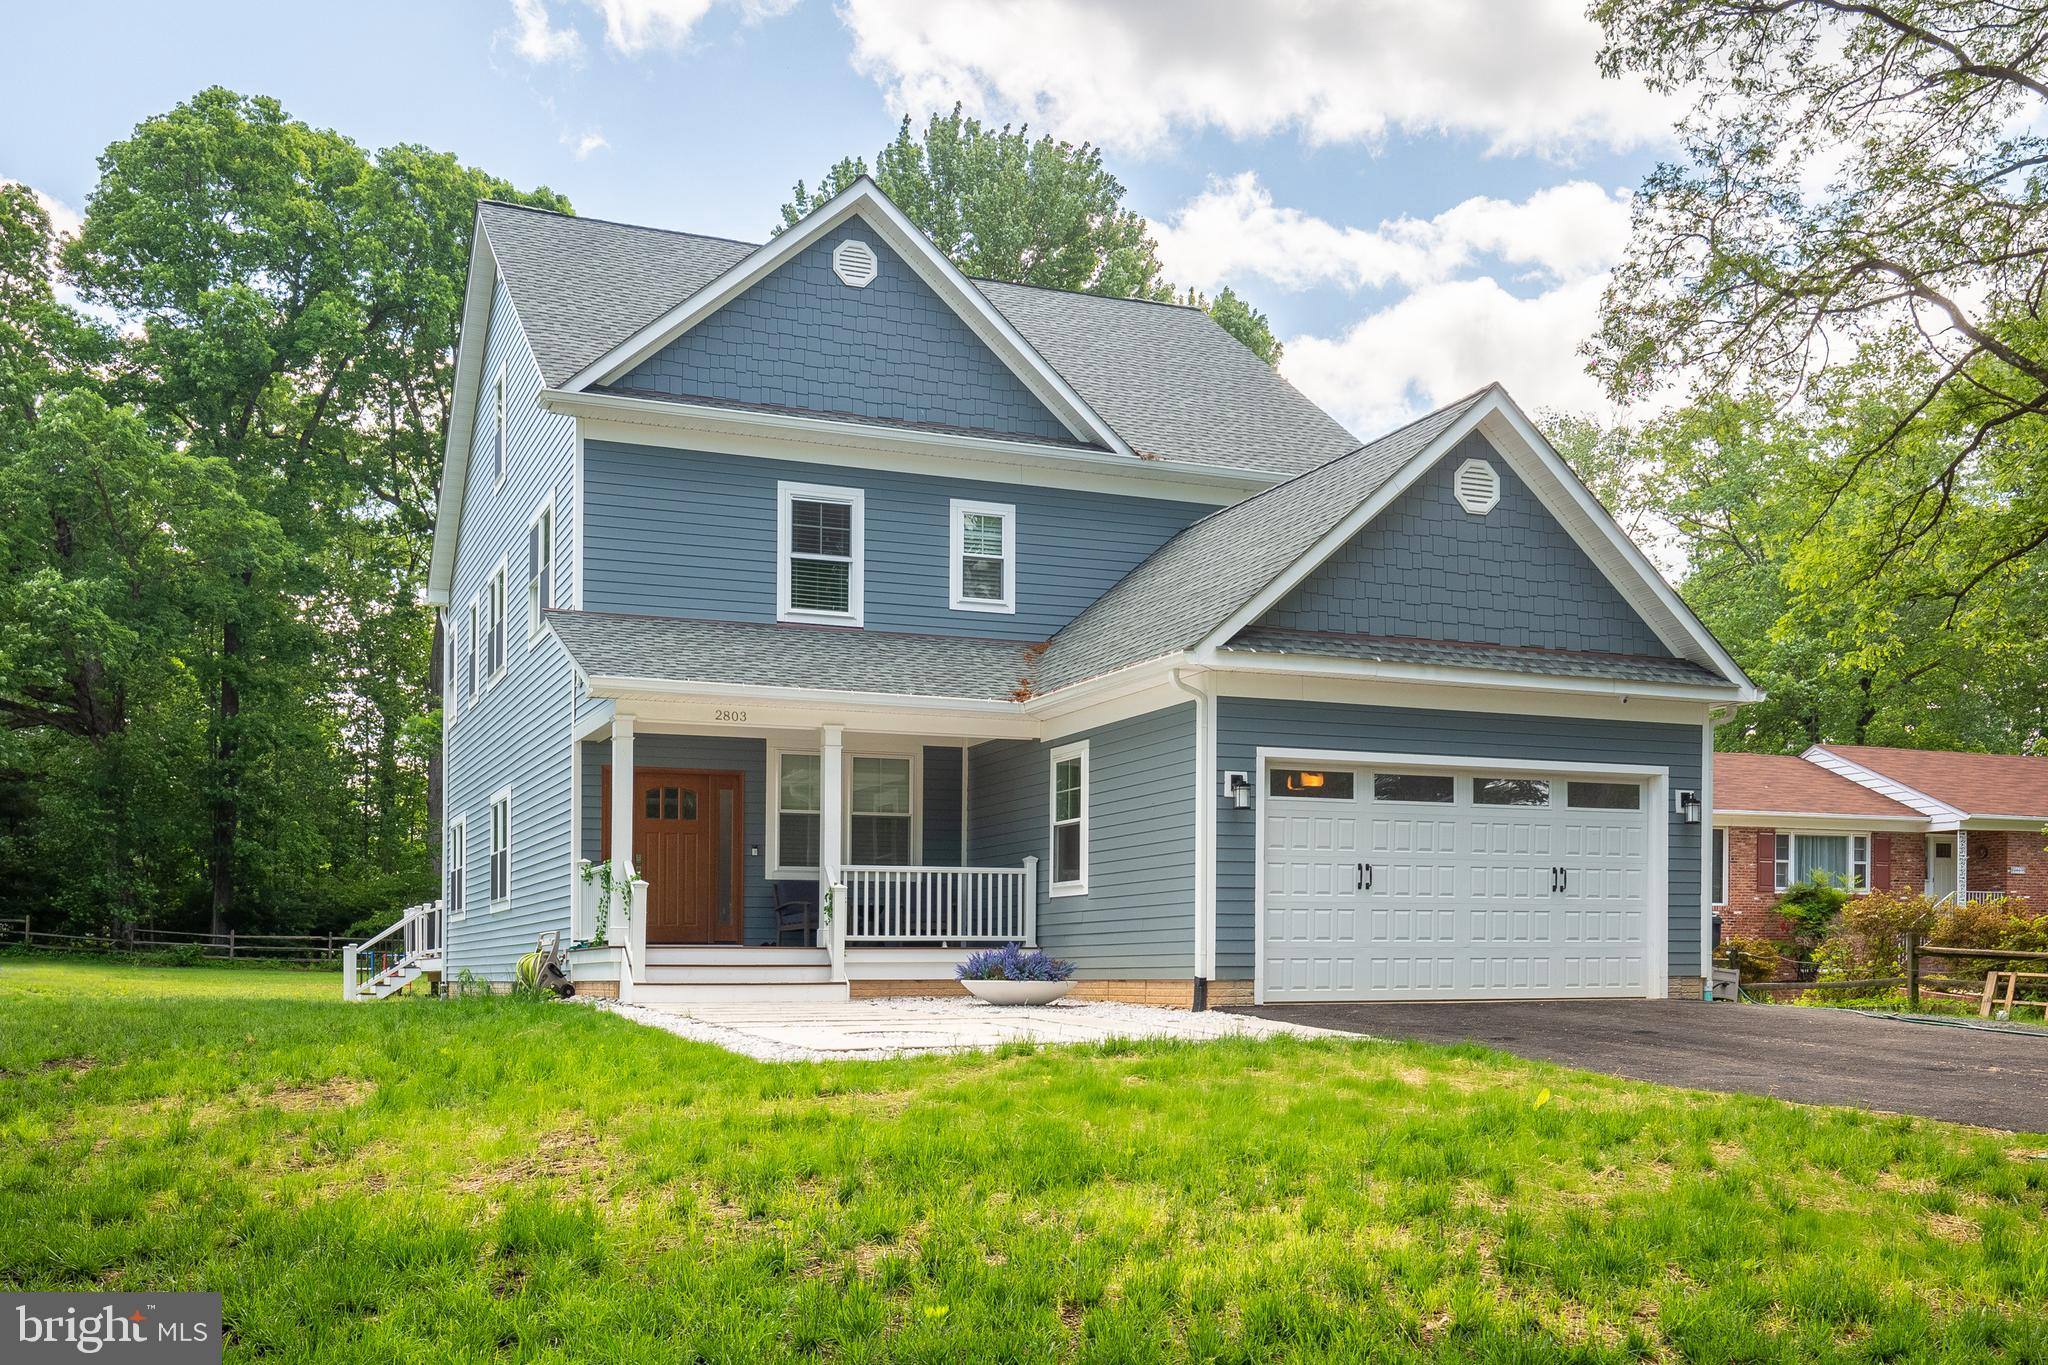 3821 Mode Street, Fairfax, VA 22031